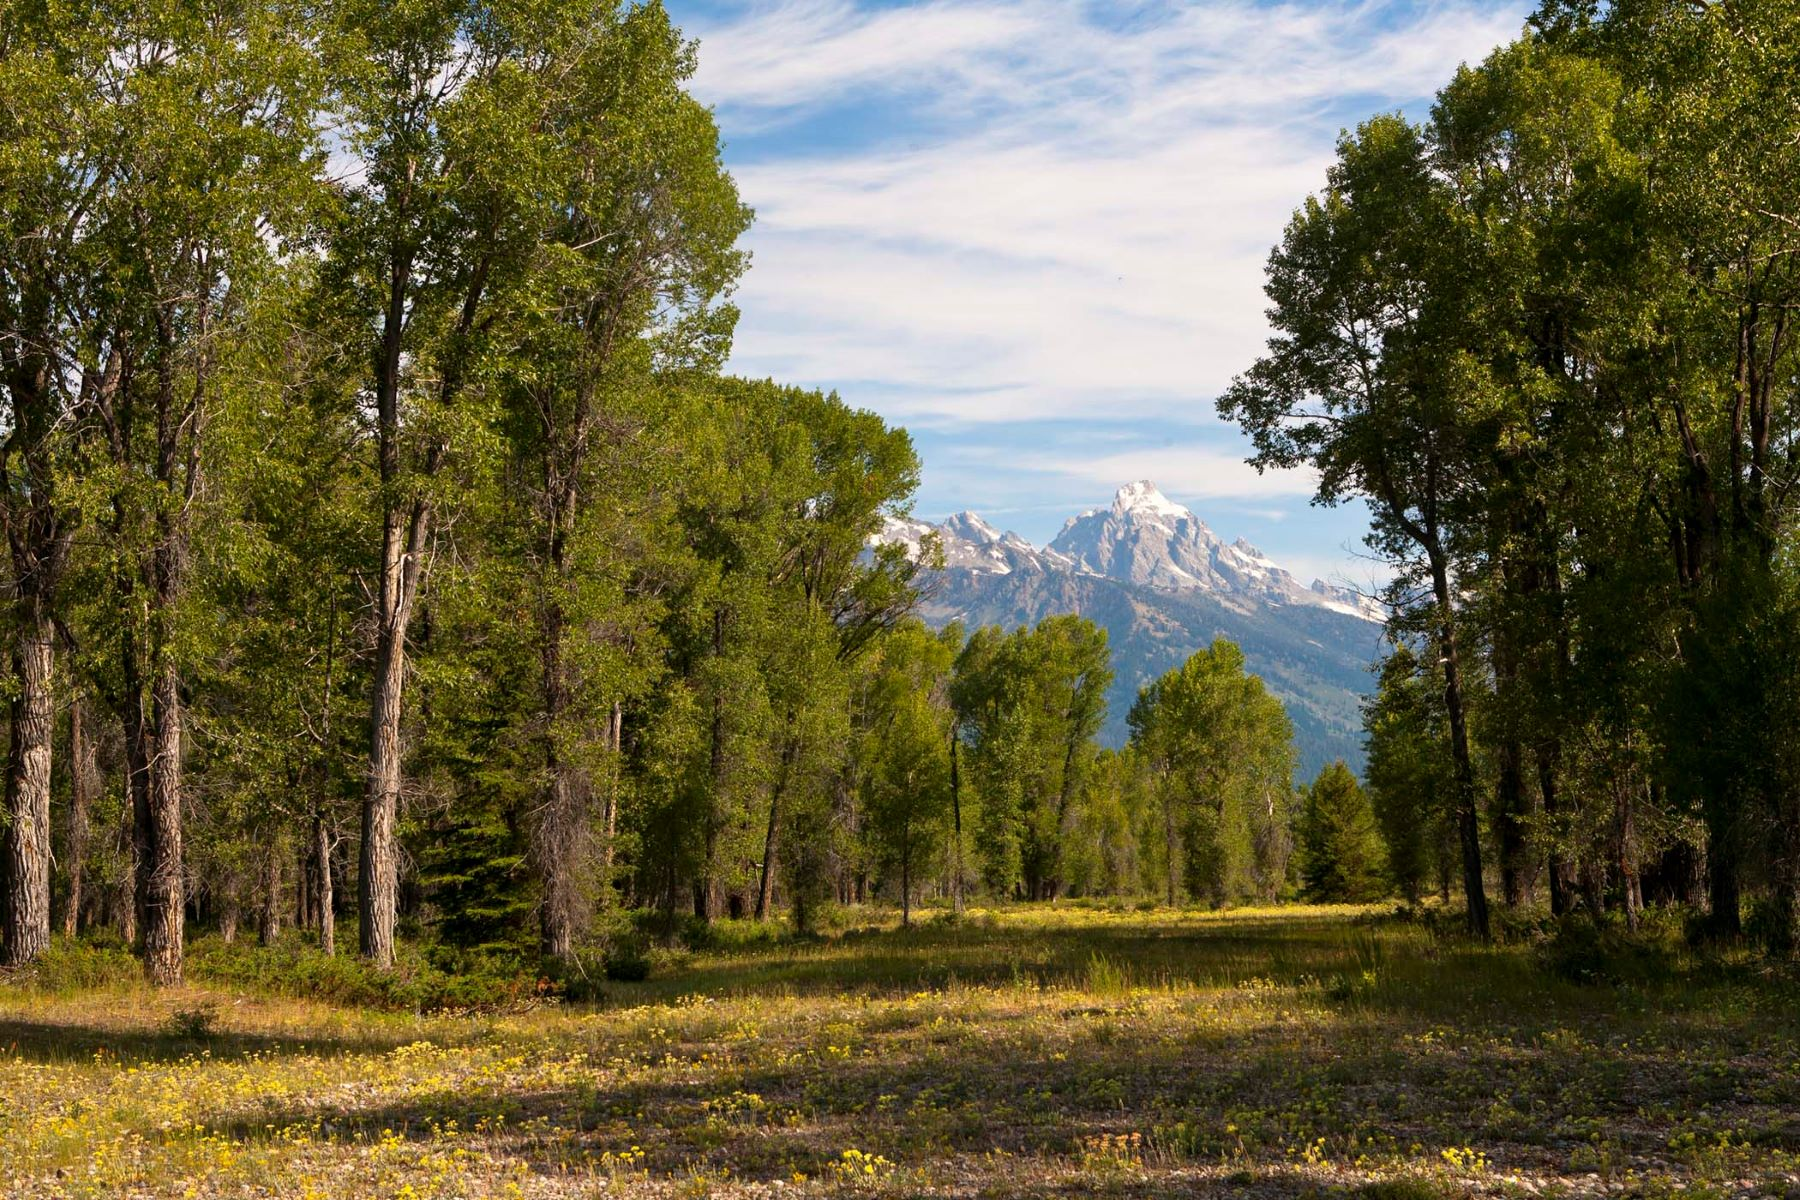 Land for Sale at Snake River Sanctuary Tract A & B (See Legal) Jackson, Wyoming, 83001 Jackson Hole, United States